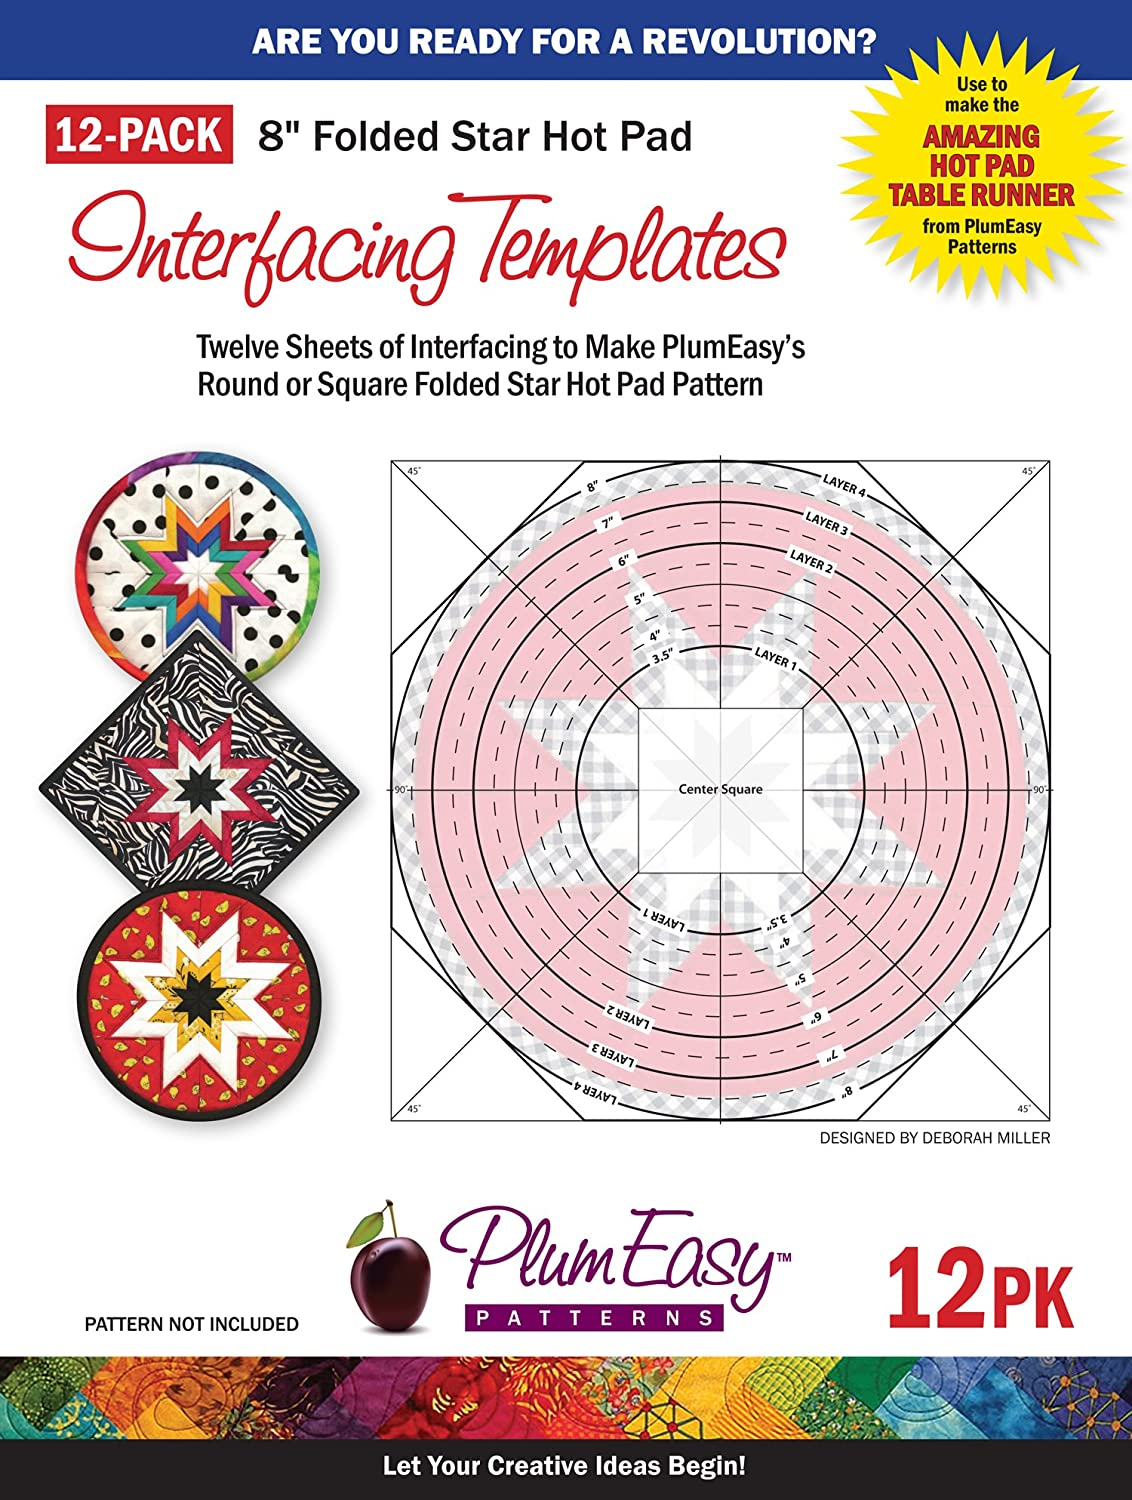 Folded Star 8-inch Hot Pad Interfacing Templates 12-pack: 12 Custom-printed 8.5